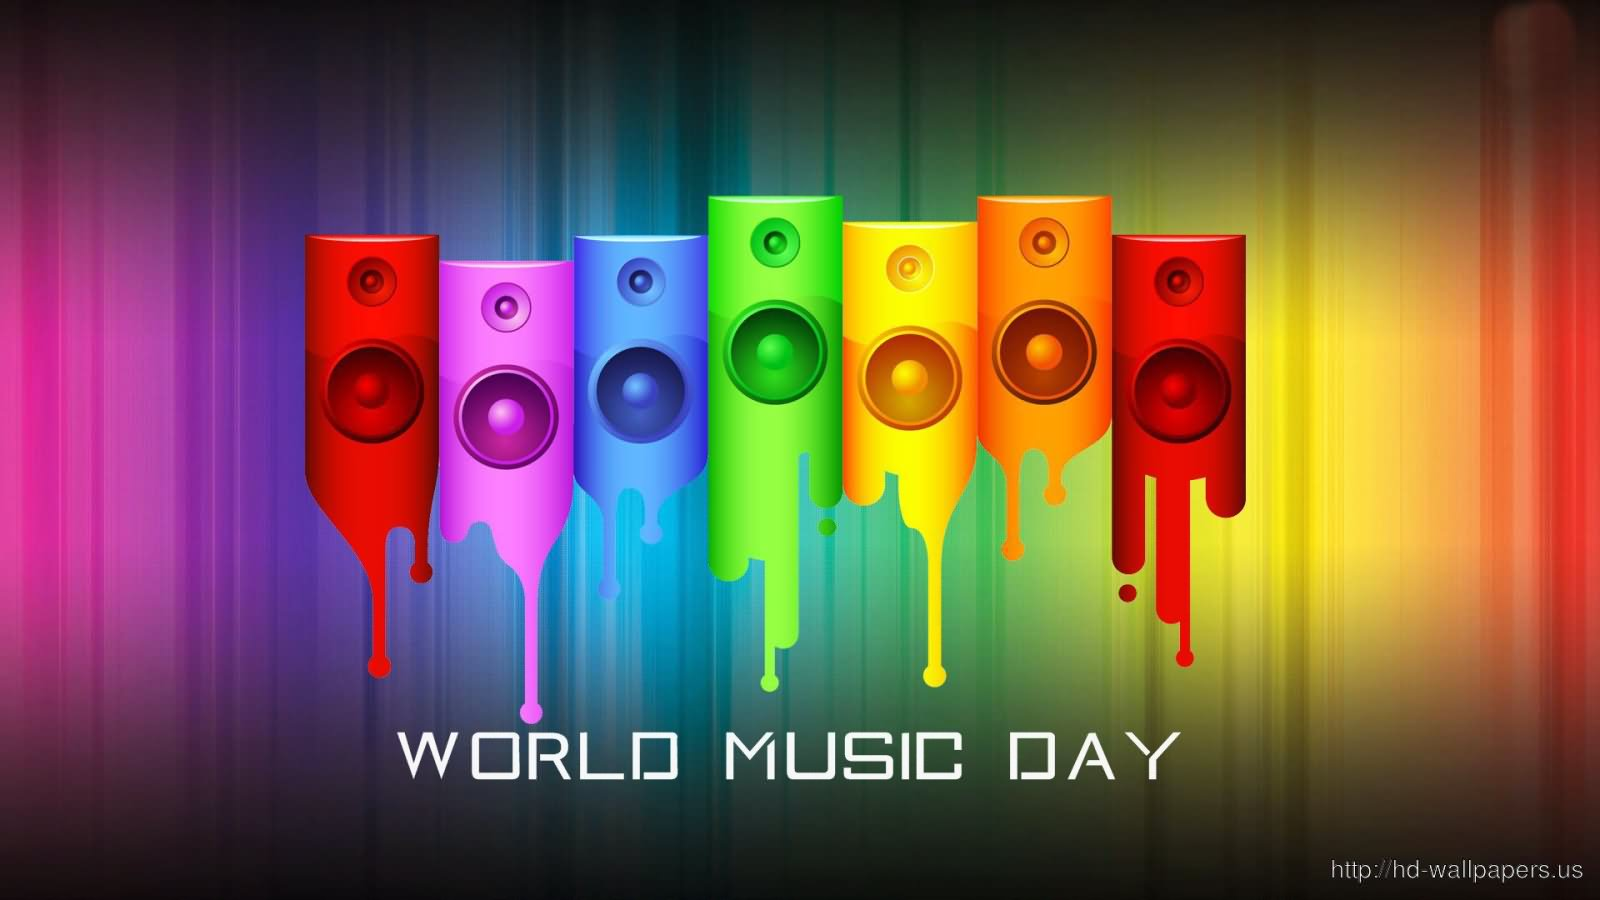 Have A Great Day World Music Day Wishes Message For Friend Image